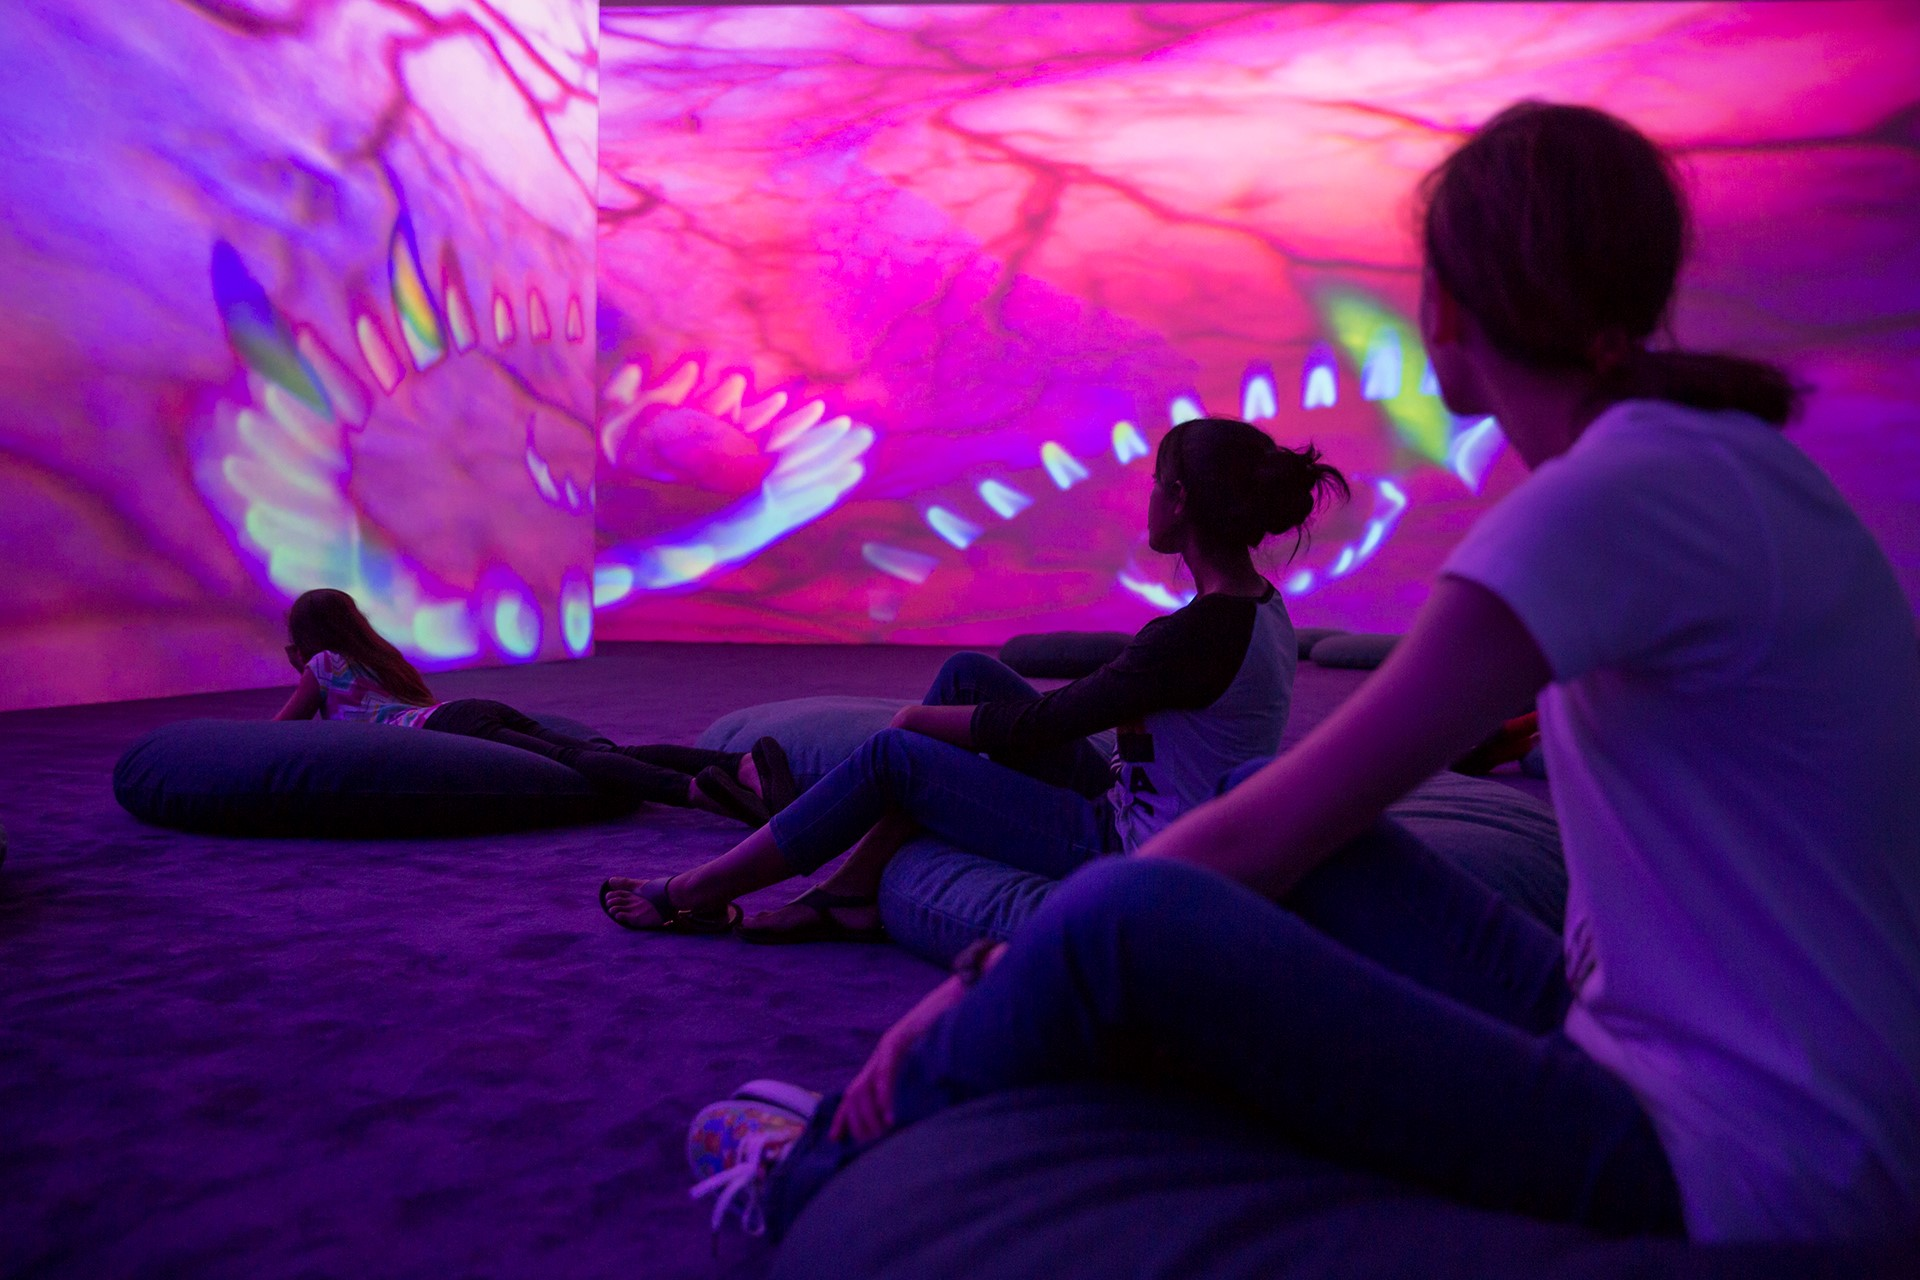 Pipilotti Rist, Storyhive photo / Worry Will Vanish Dissolution, kids on floor with video